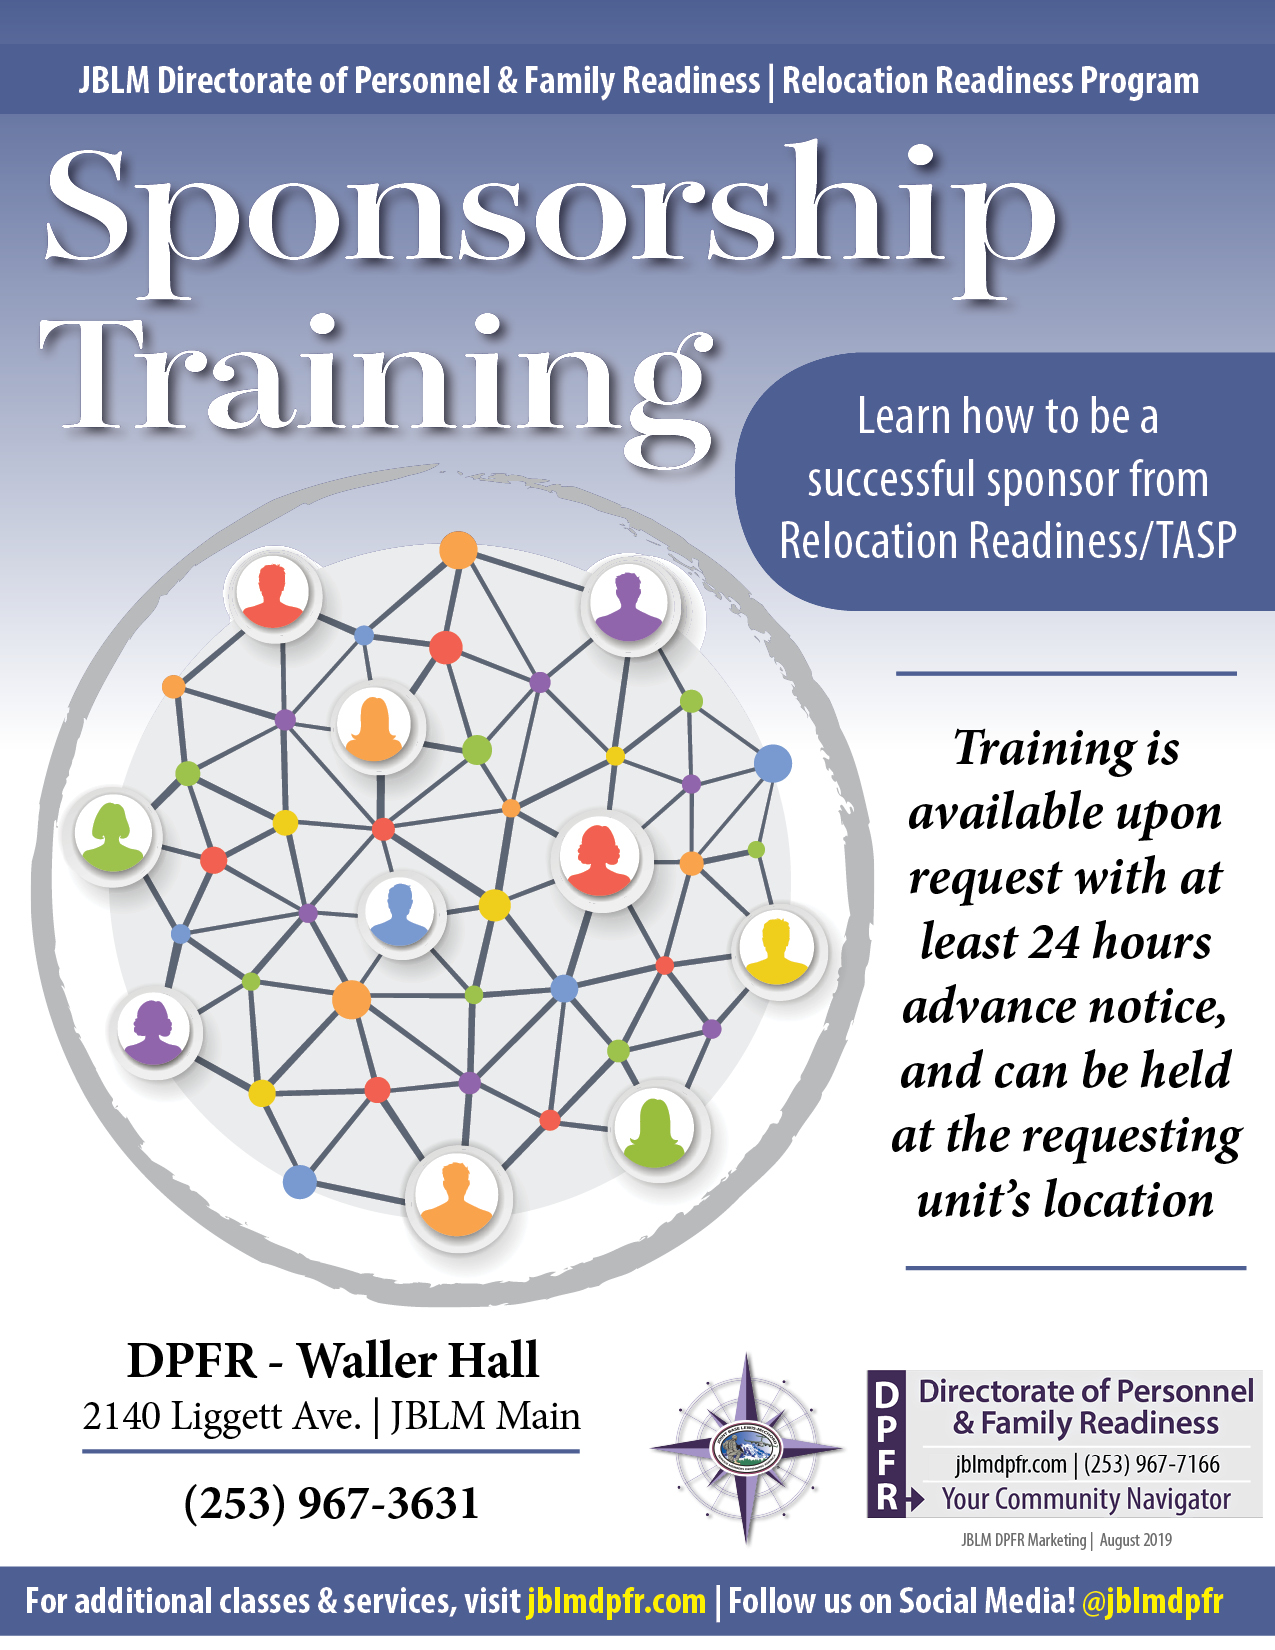 DPFR-Relo-Sponsorship-Training-AUG2019-final.jpg